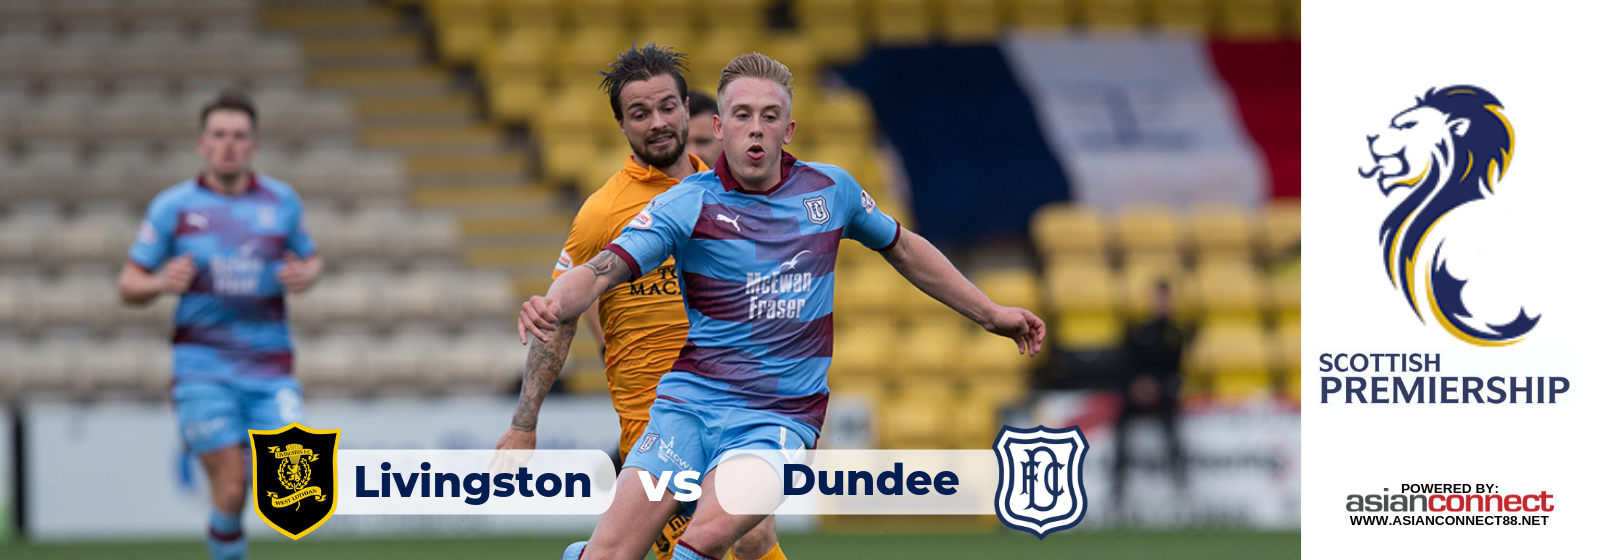 Livingston vs Dundee FC Asianodds